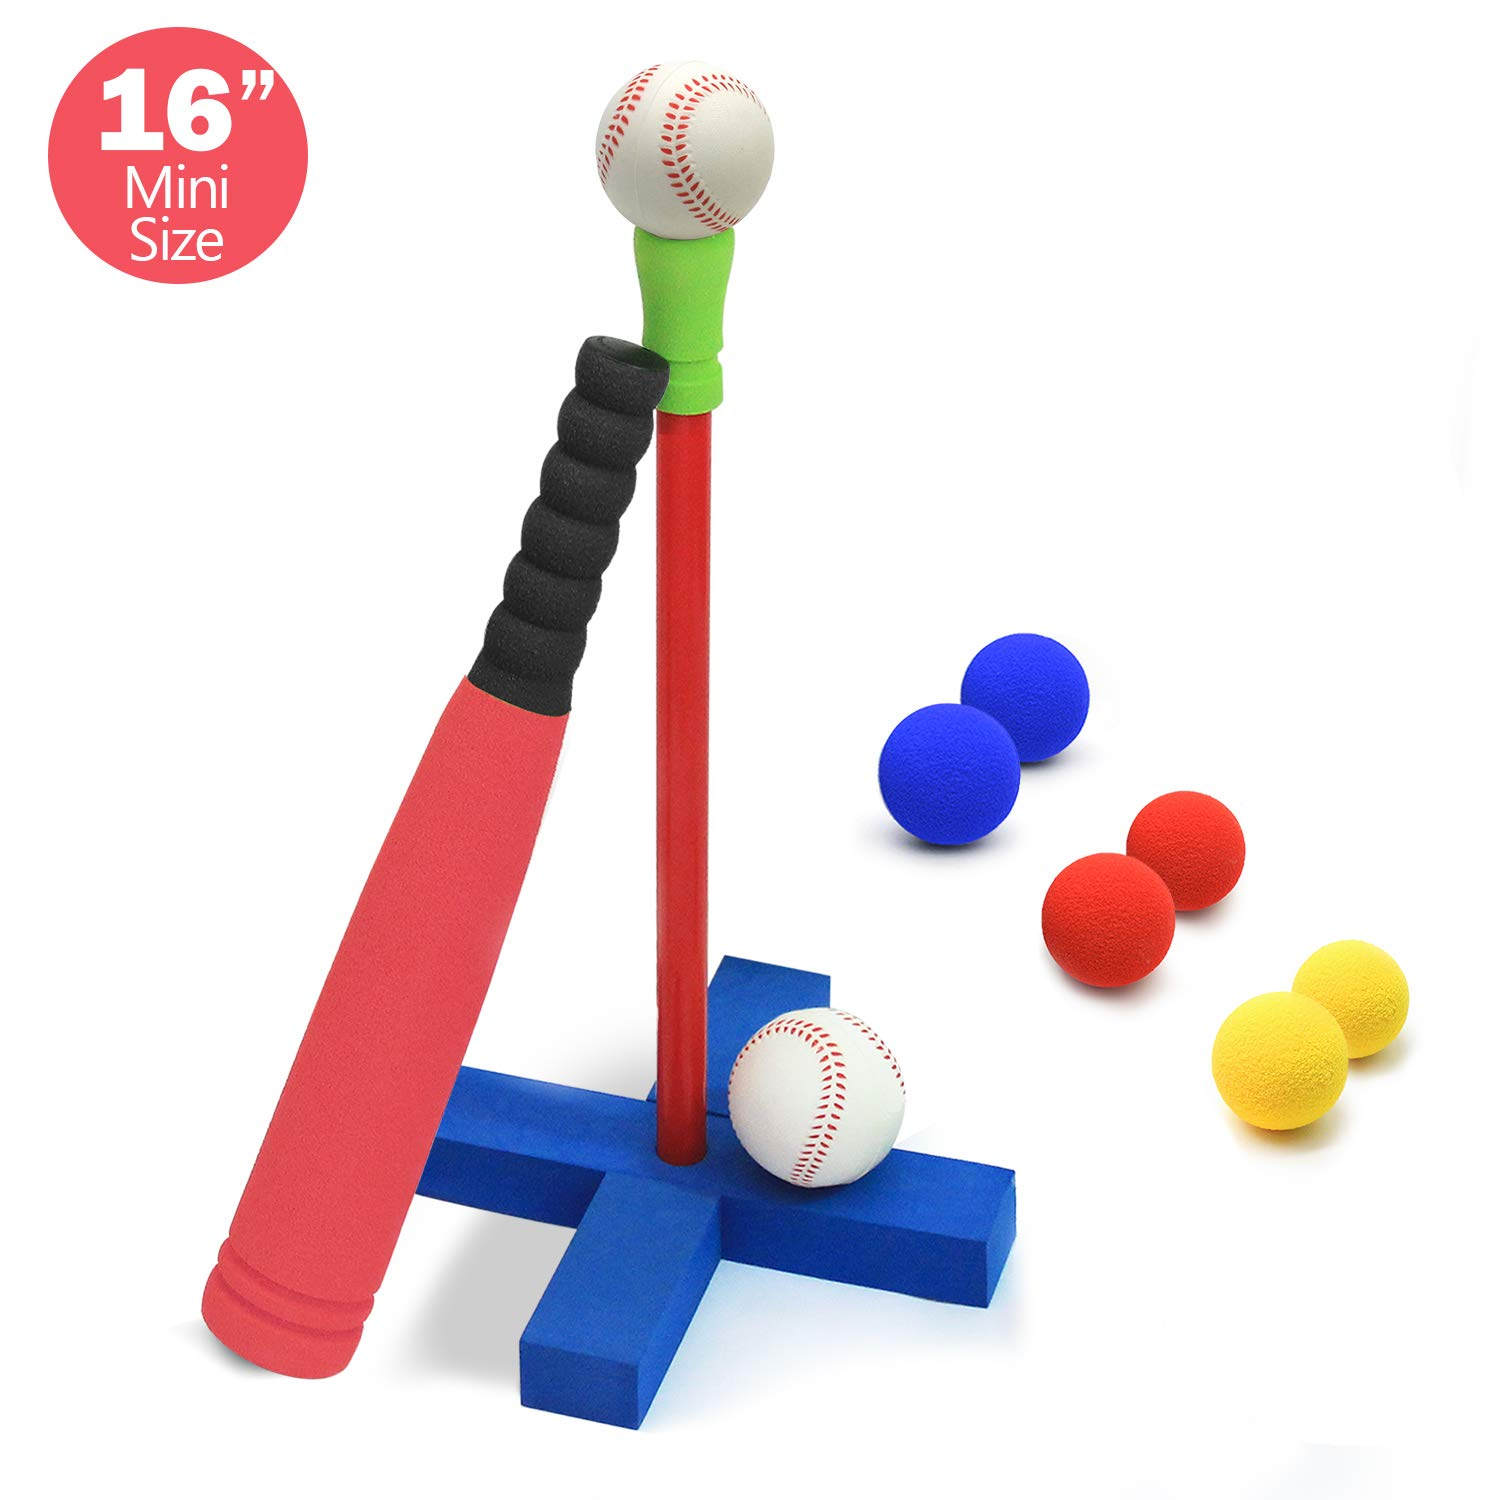 CeleMoon 16-Inch Kids Soft Foam T-Ball Baseball Set Toy, 8 Different Colored Balls, Carry/Organize Bag Included, for Kids Over 1 Years Old (Red) by CeleMoon